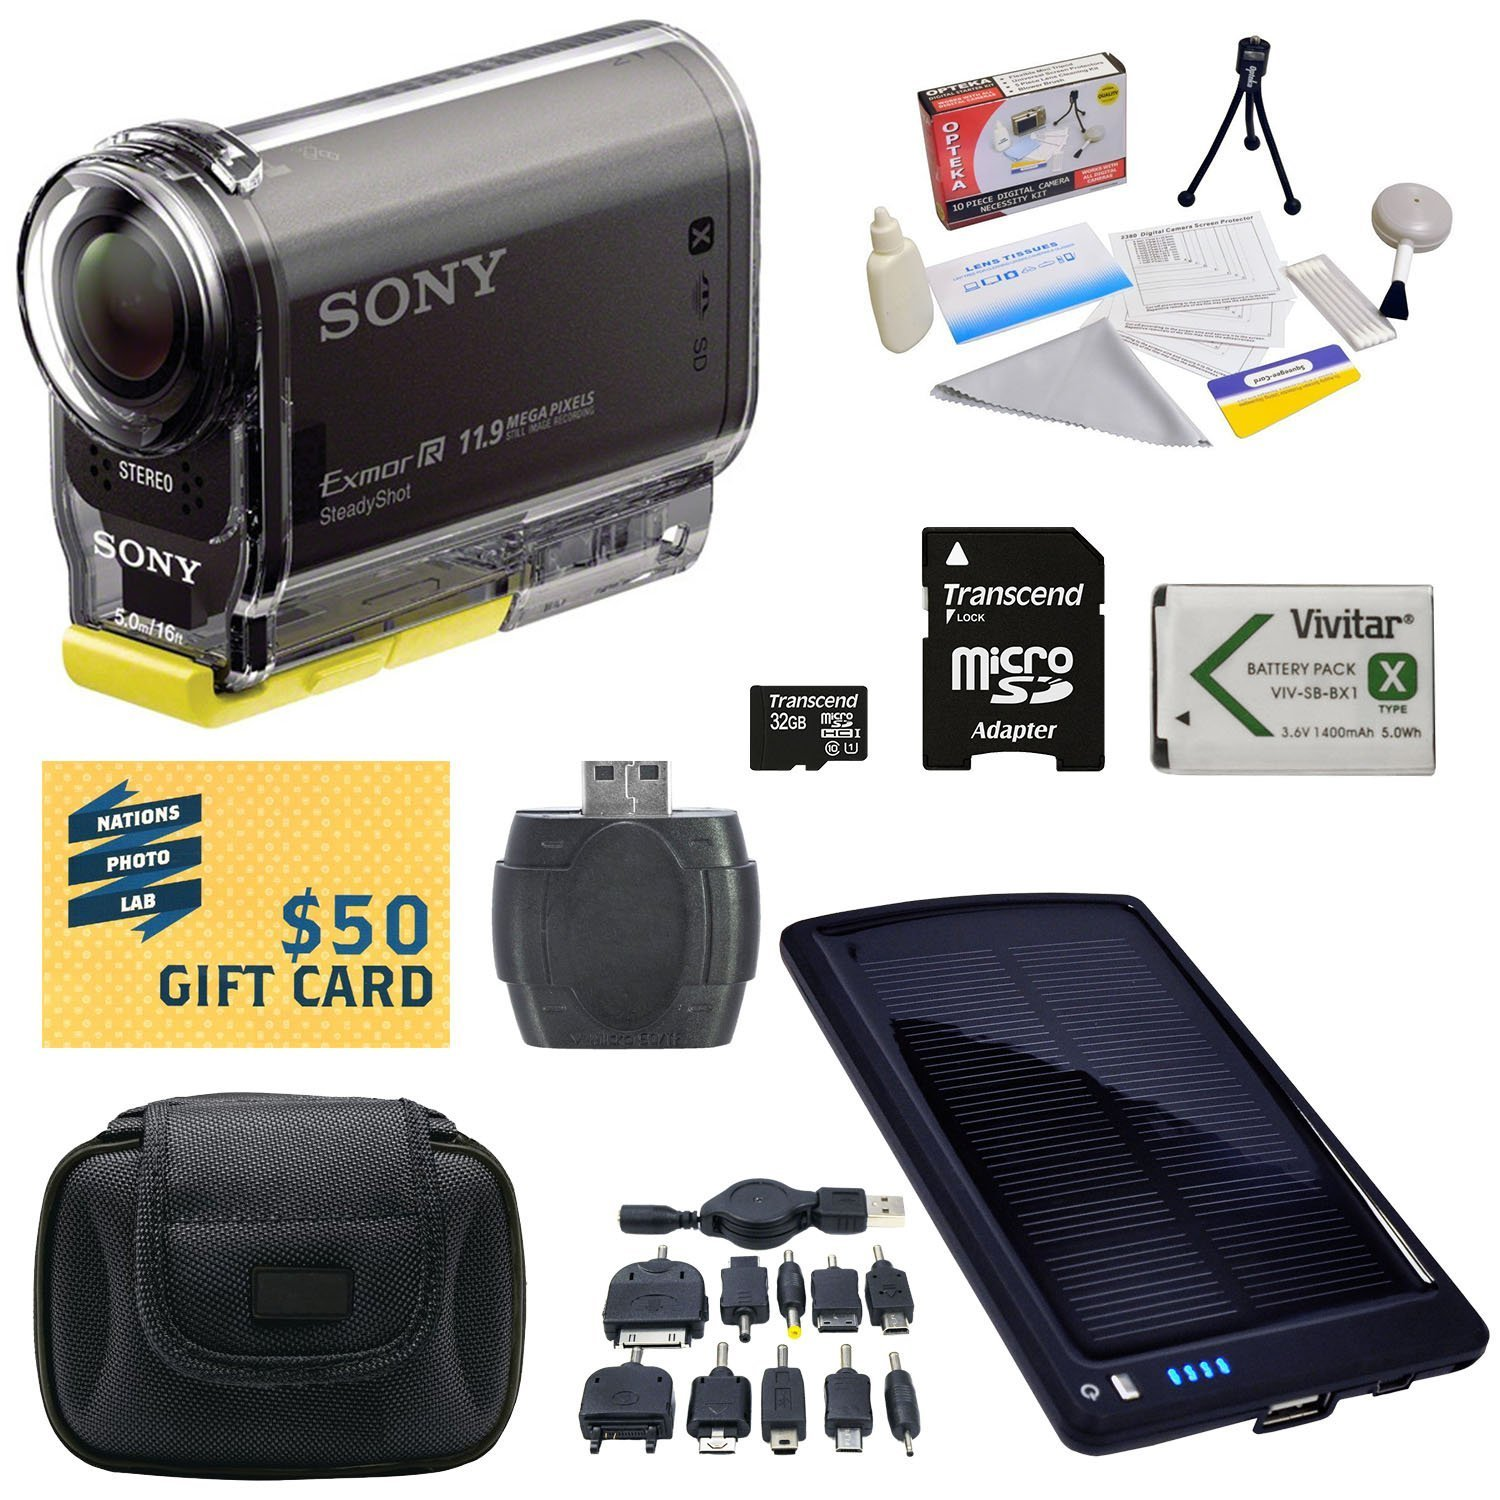 Sony HDR-AS30V HD POV Action Camcorder with 47stPhoto Ultimate Accessory Kit Includes - 32GB High-Speed Micro SD Card + Card Reader + NP-BX1 1400mAh Li-ion Battery + Hard Shell Carrying Case + Solar Battery Charger/ Backup + Lens Cleaning Kit including LC by 47th Street Photo